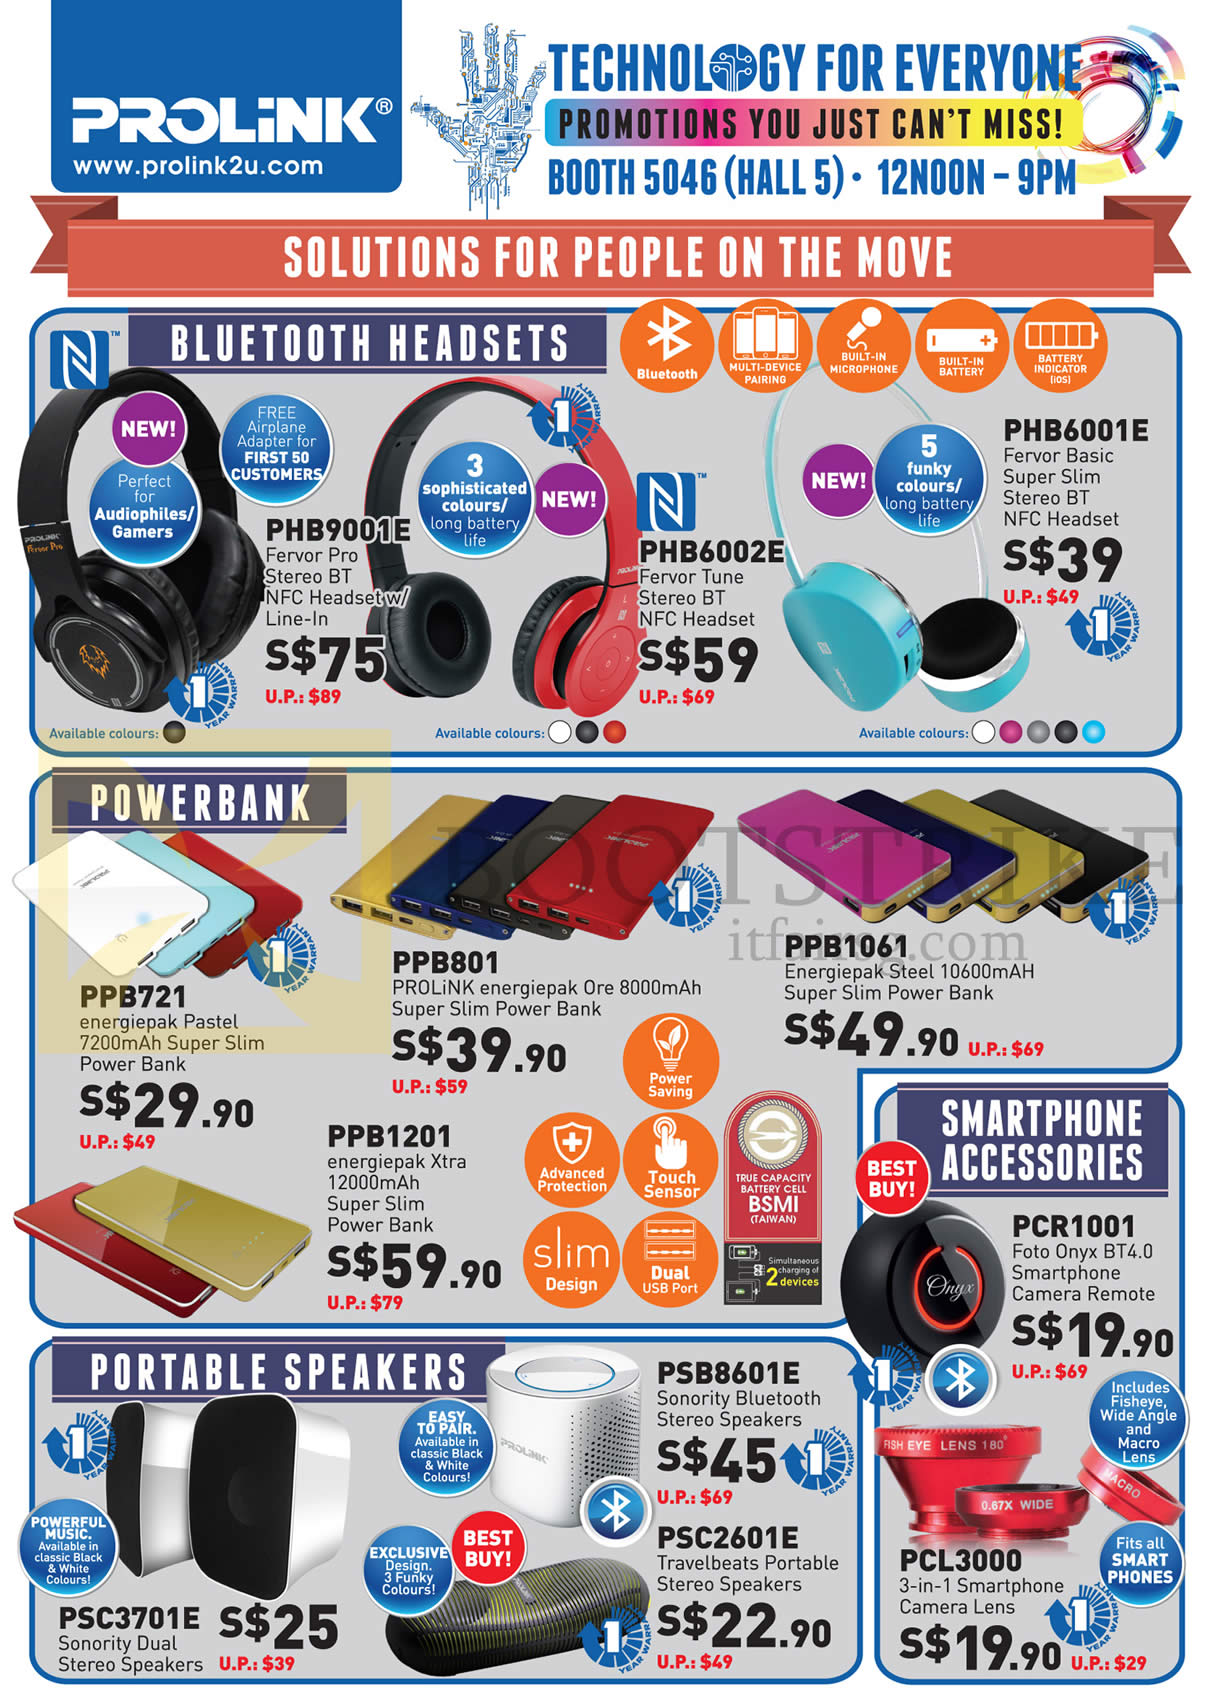 PC SHOW 2015 price list image brochure of Prolink Bluetooth Headsets, Powerbank, Smartphone Accessories, Portable Speakers